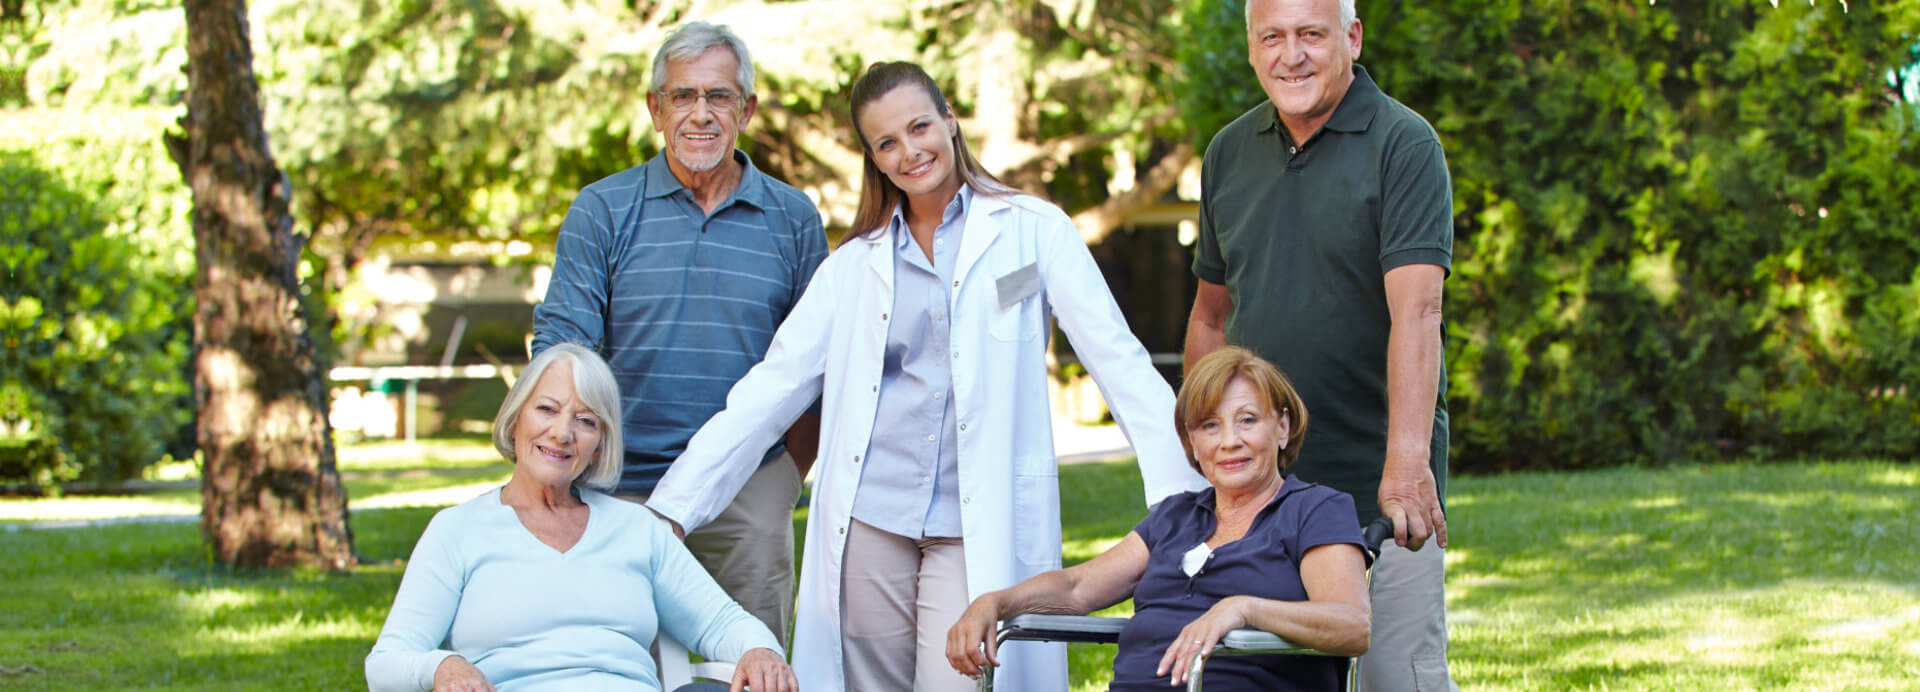 staff and elderly people